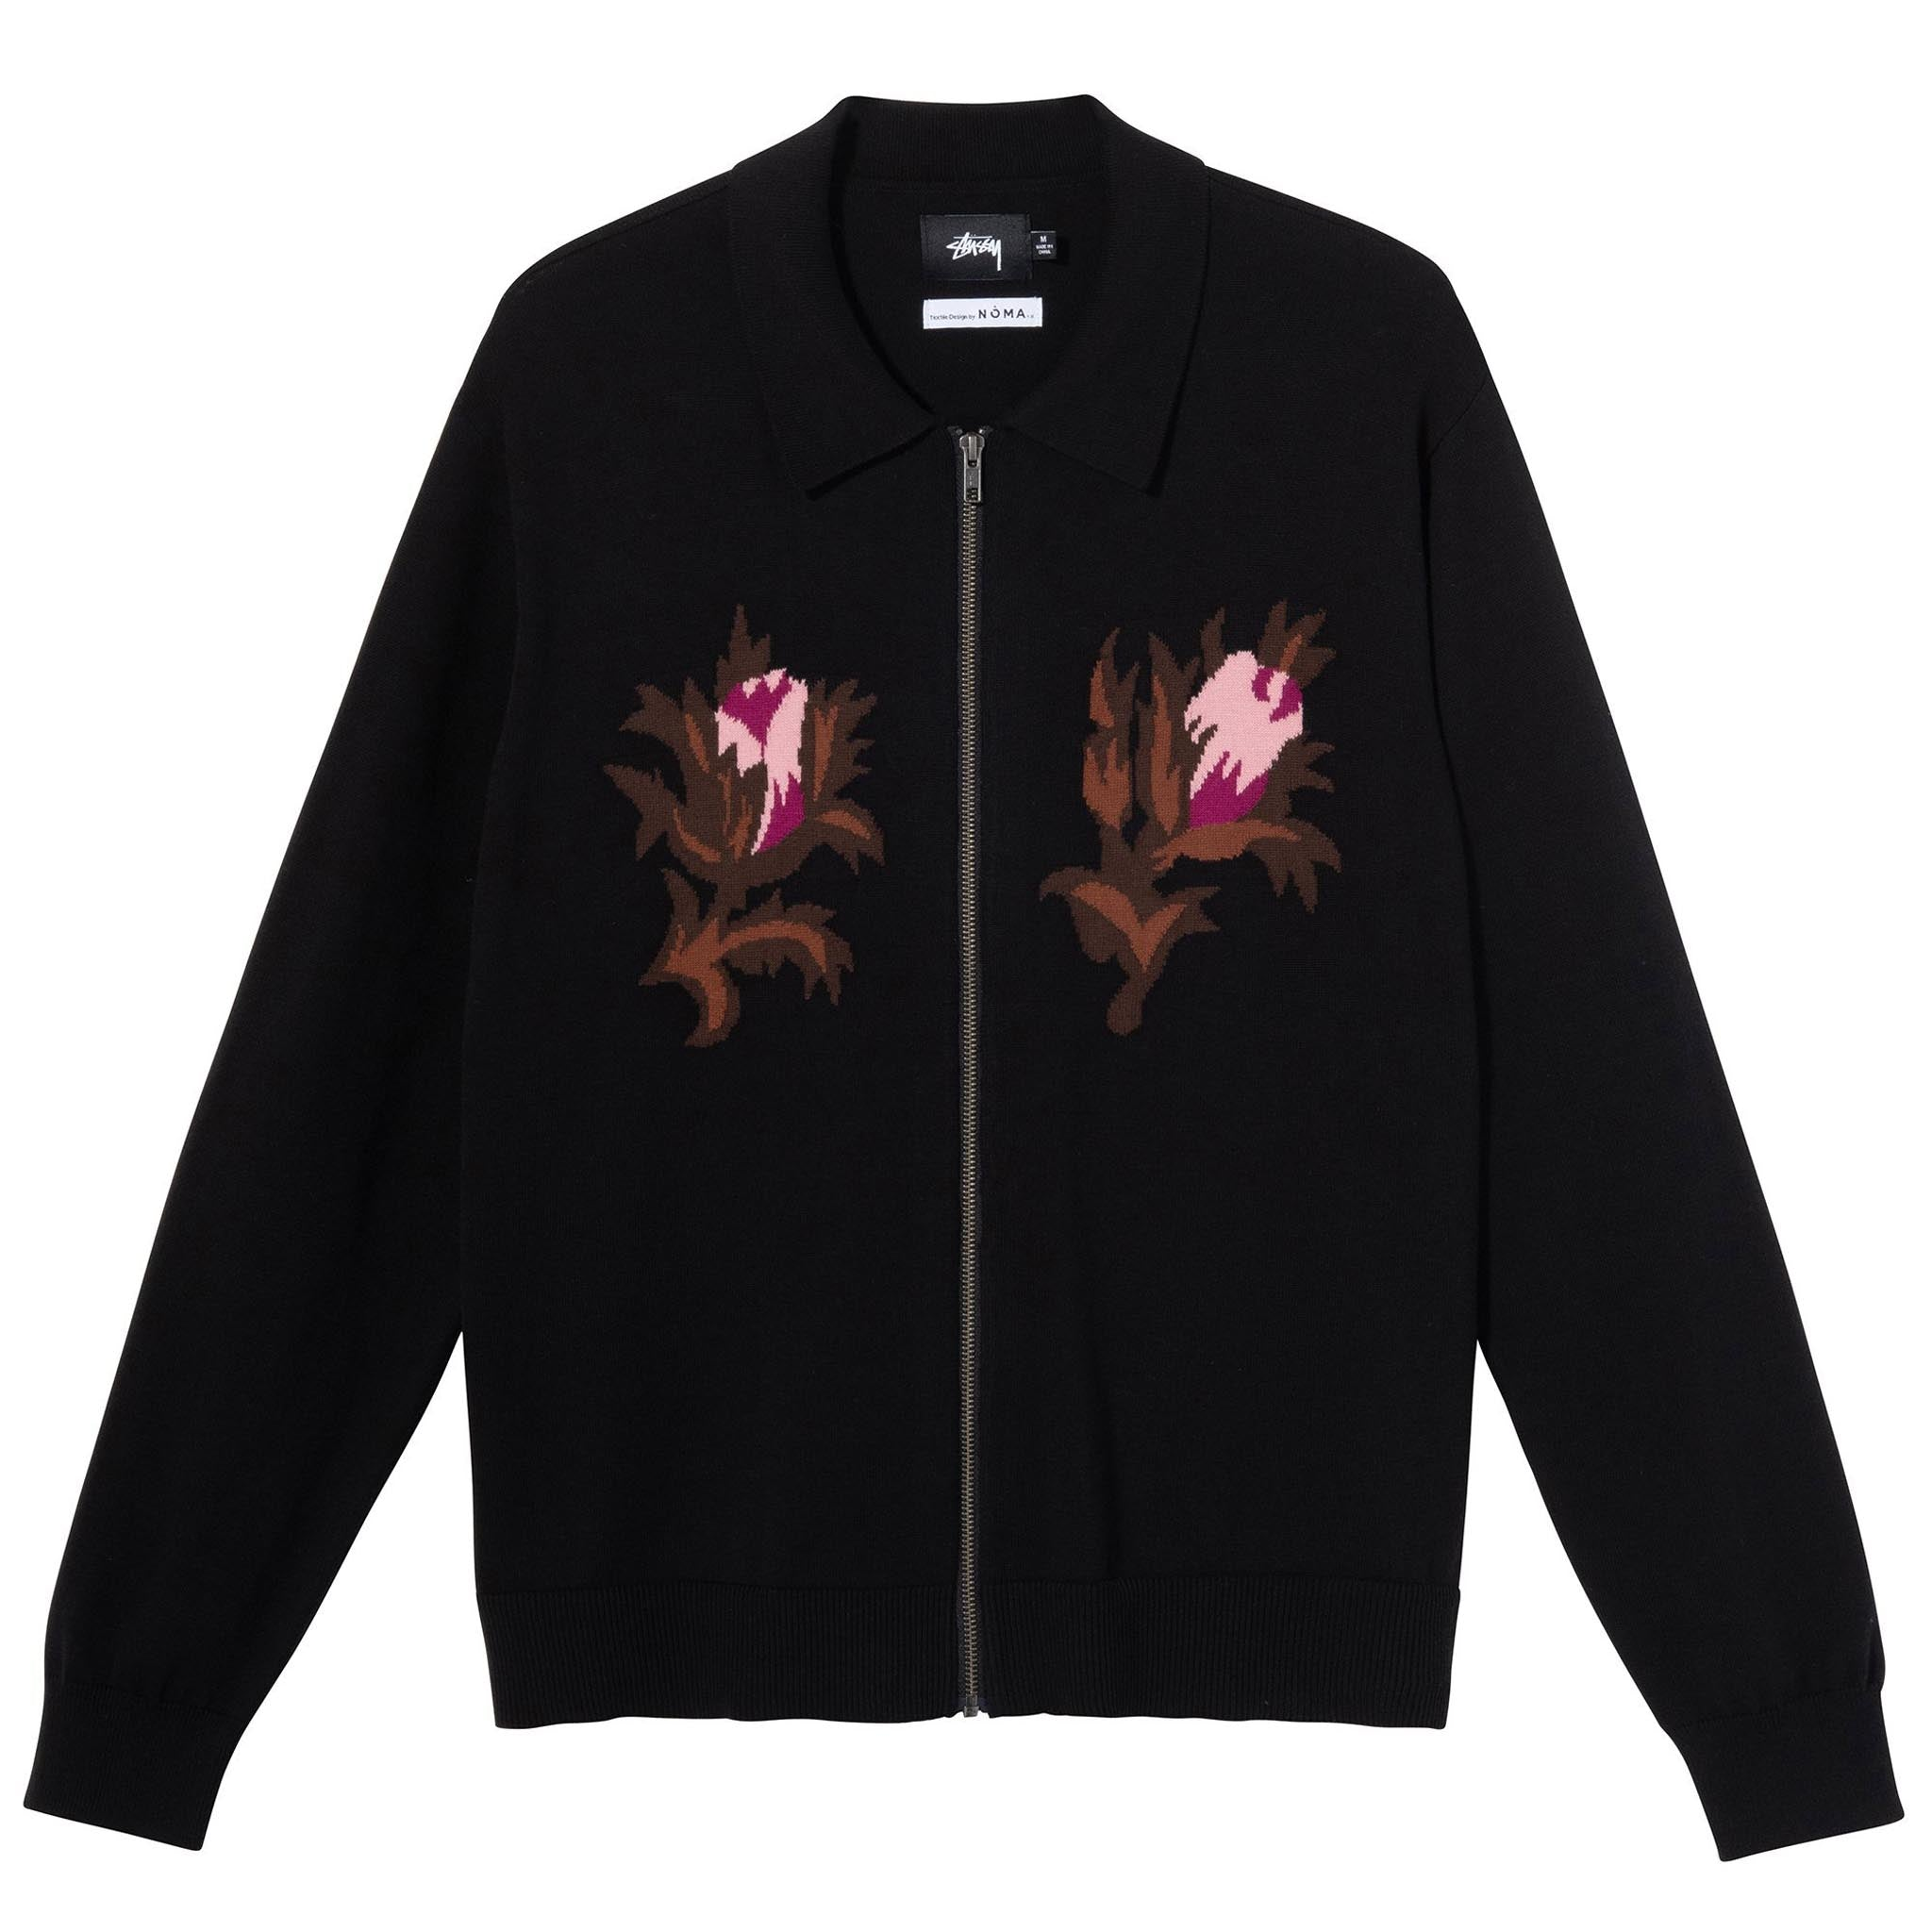 Stussy Rose thorn Long Sleeve Zip Sweater Black